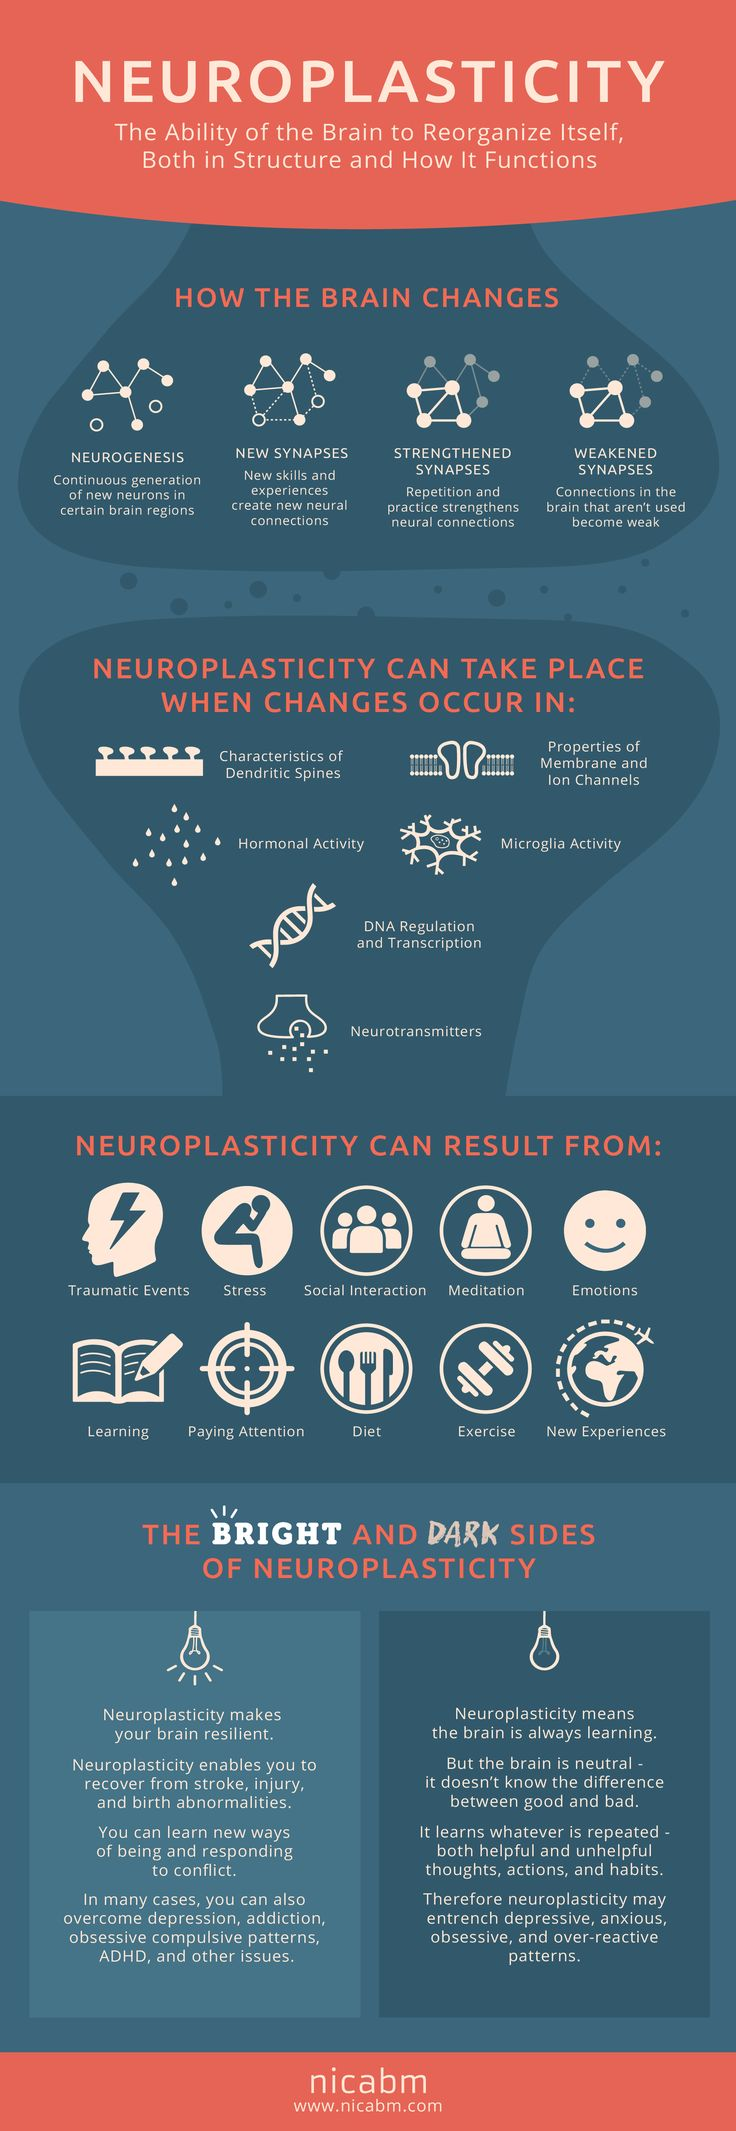 How Does Neuroplasticity Work? #infographic #neuroscience #medicine #neuroplasticity #brain https://plus.google.com/+CaptainJack63/posts/9YEZvqkQYUd